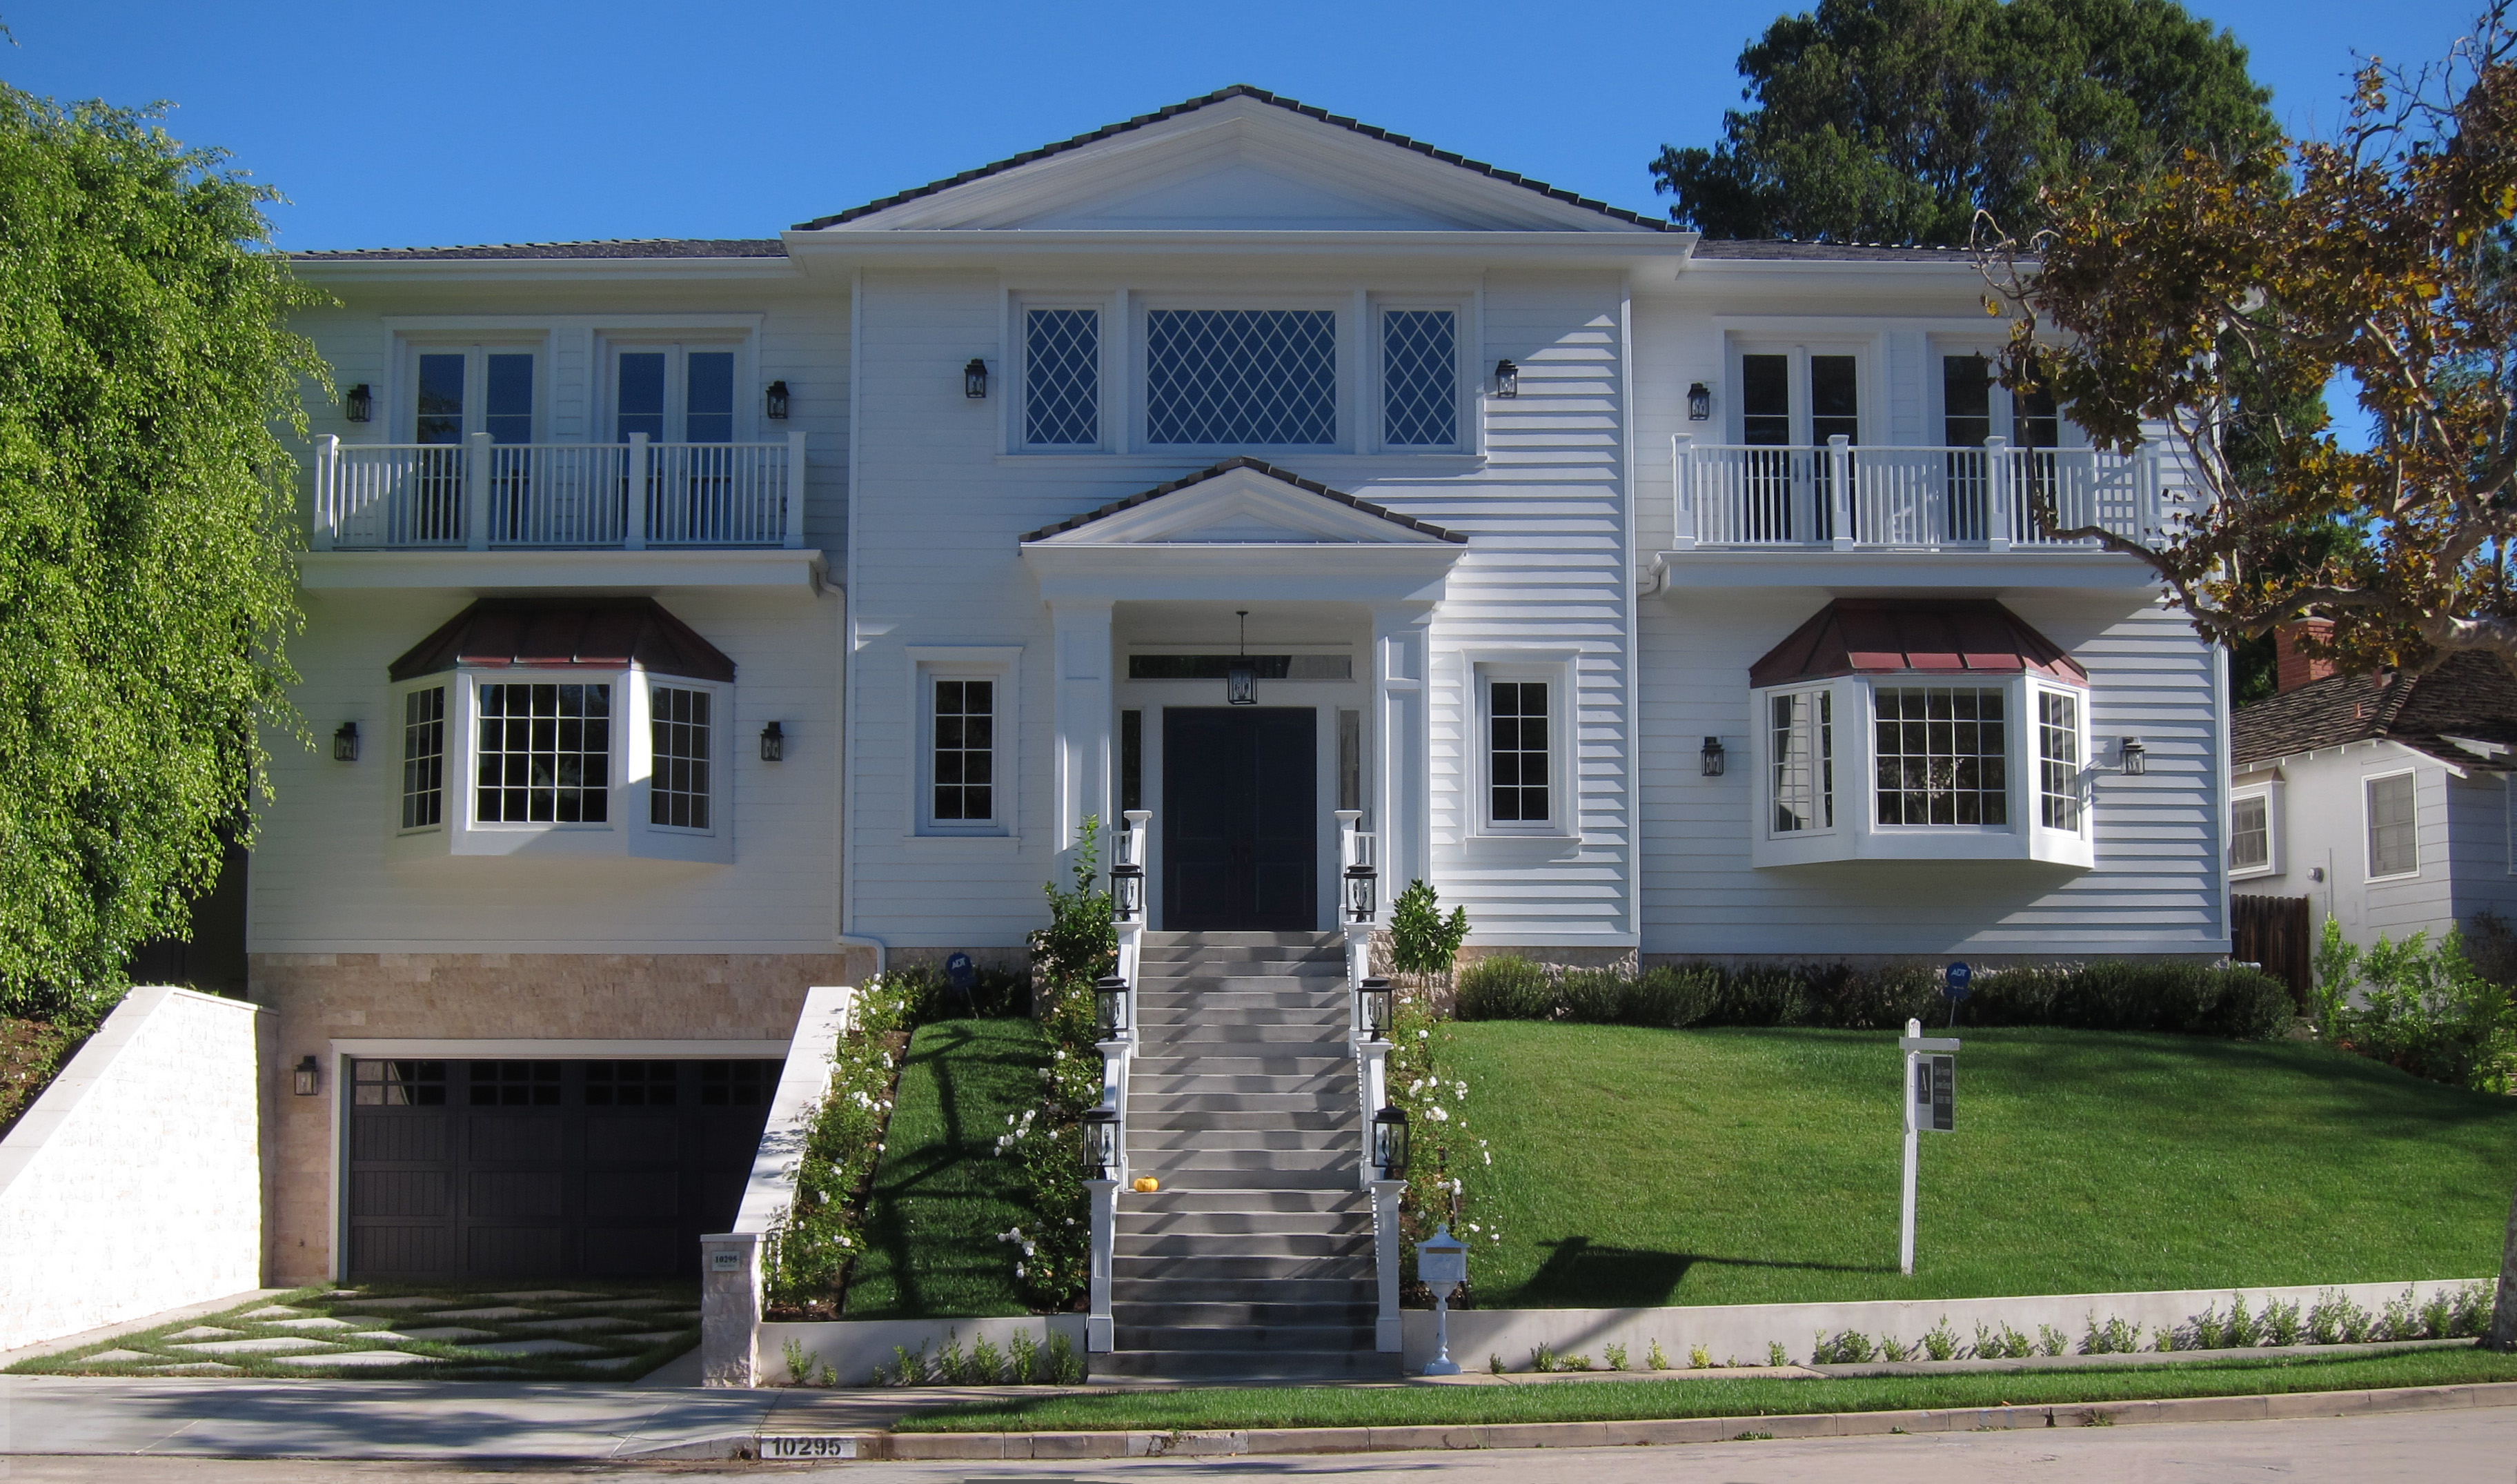 Cresta drive new built 8 bedroom house in cheviot hills 90064 for 8 bedroom homes